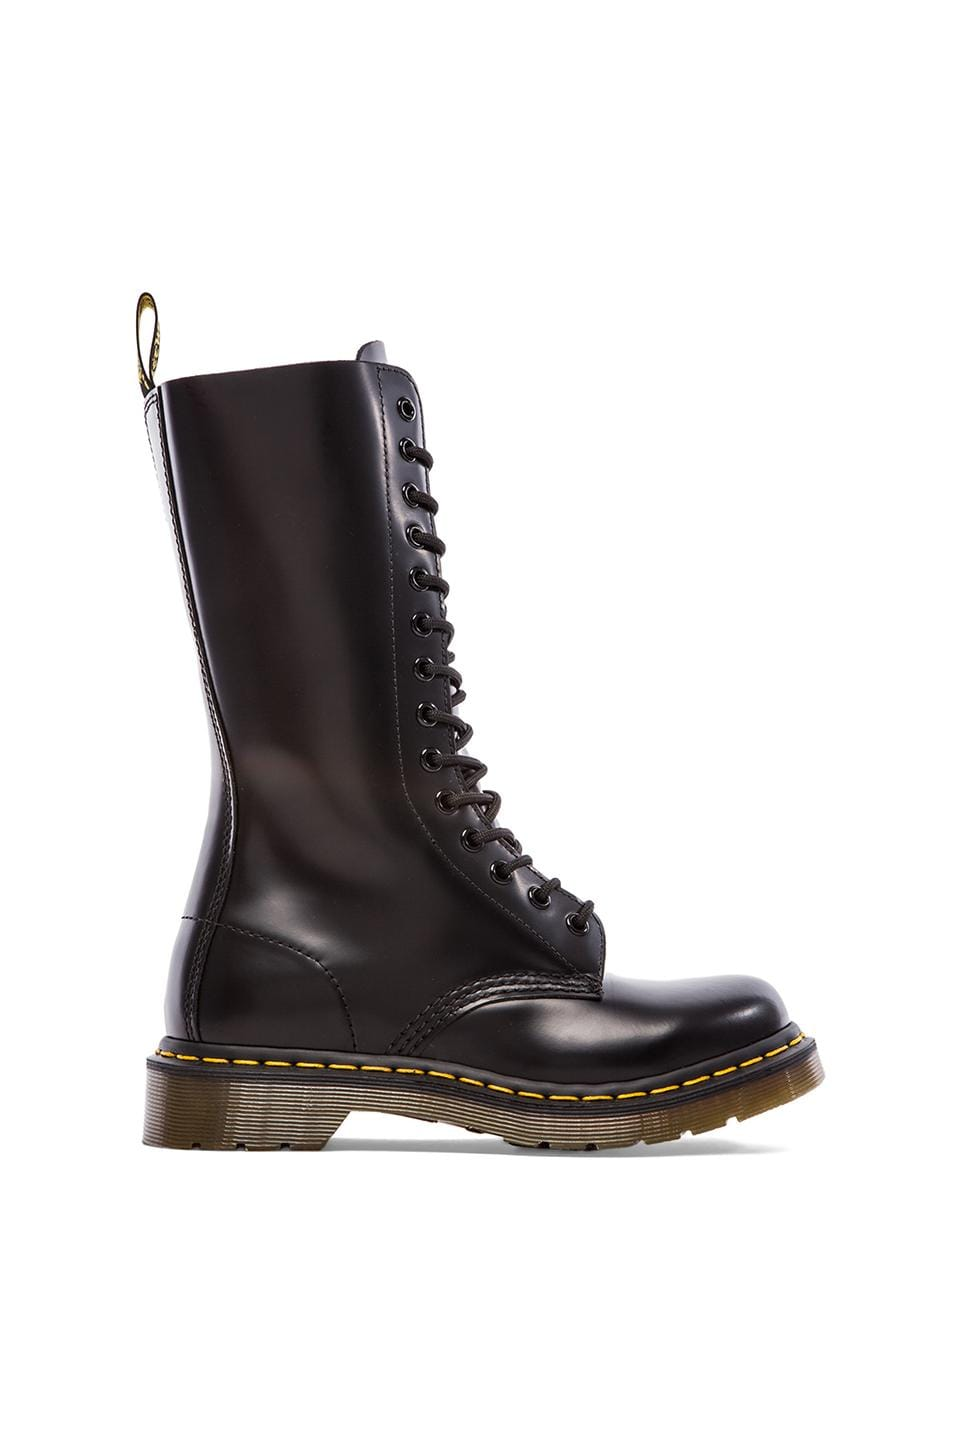 Dr. Martens 1914 W 14-Eye Boot in Black